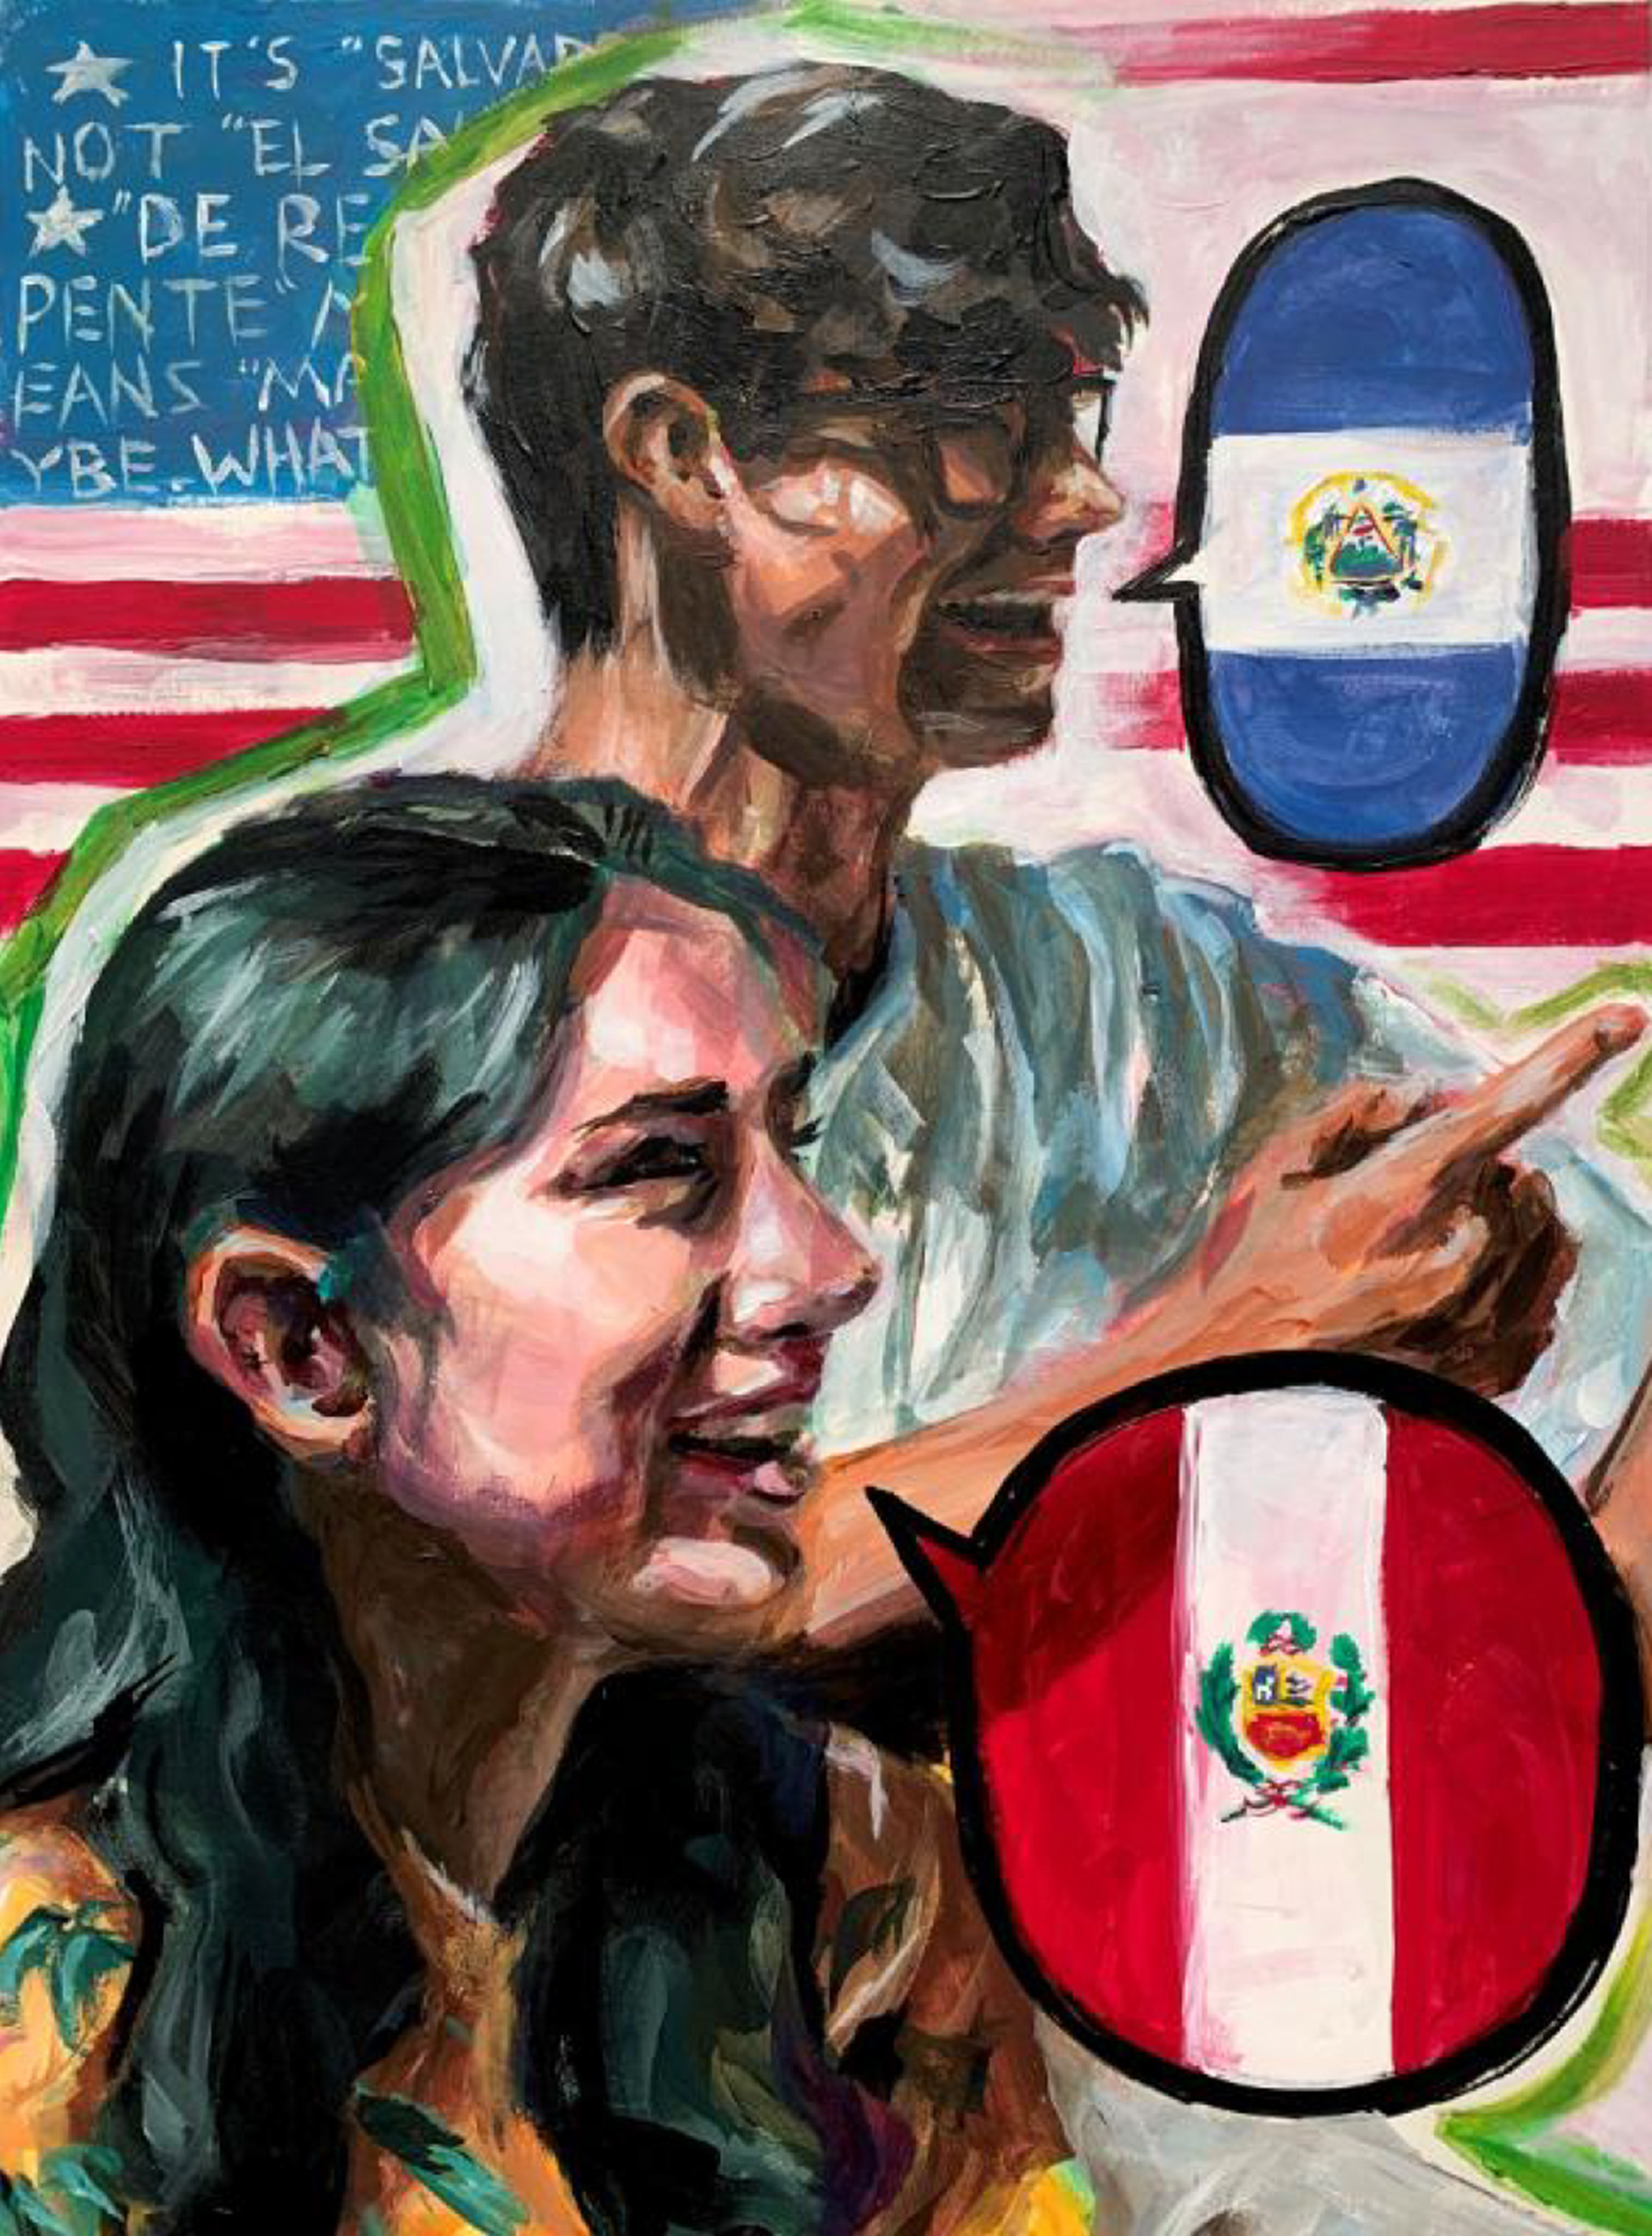 Painting of a young woman in front of a young man who are both infant of an american flag. The young woman has a speech bubble with the Peruvian flag, while the young man has a speech bubble with the El Salvador flag